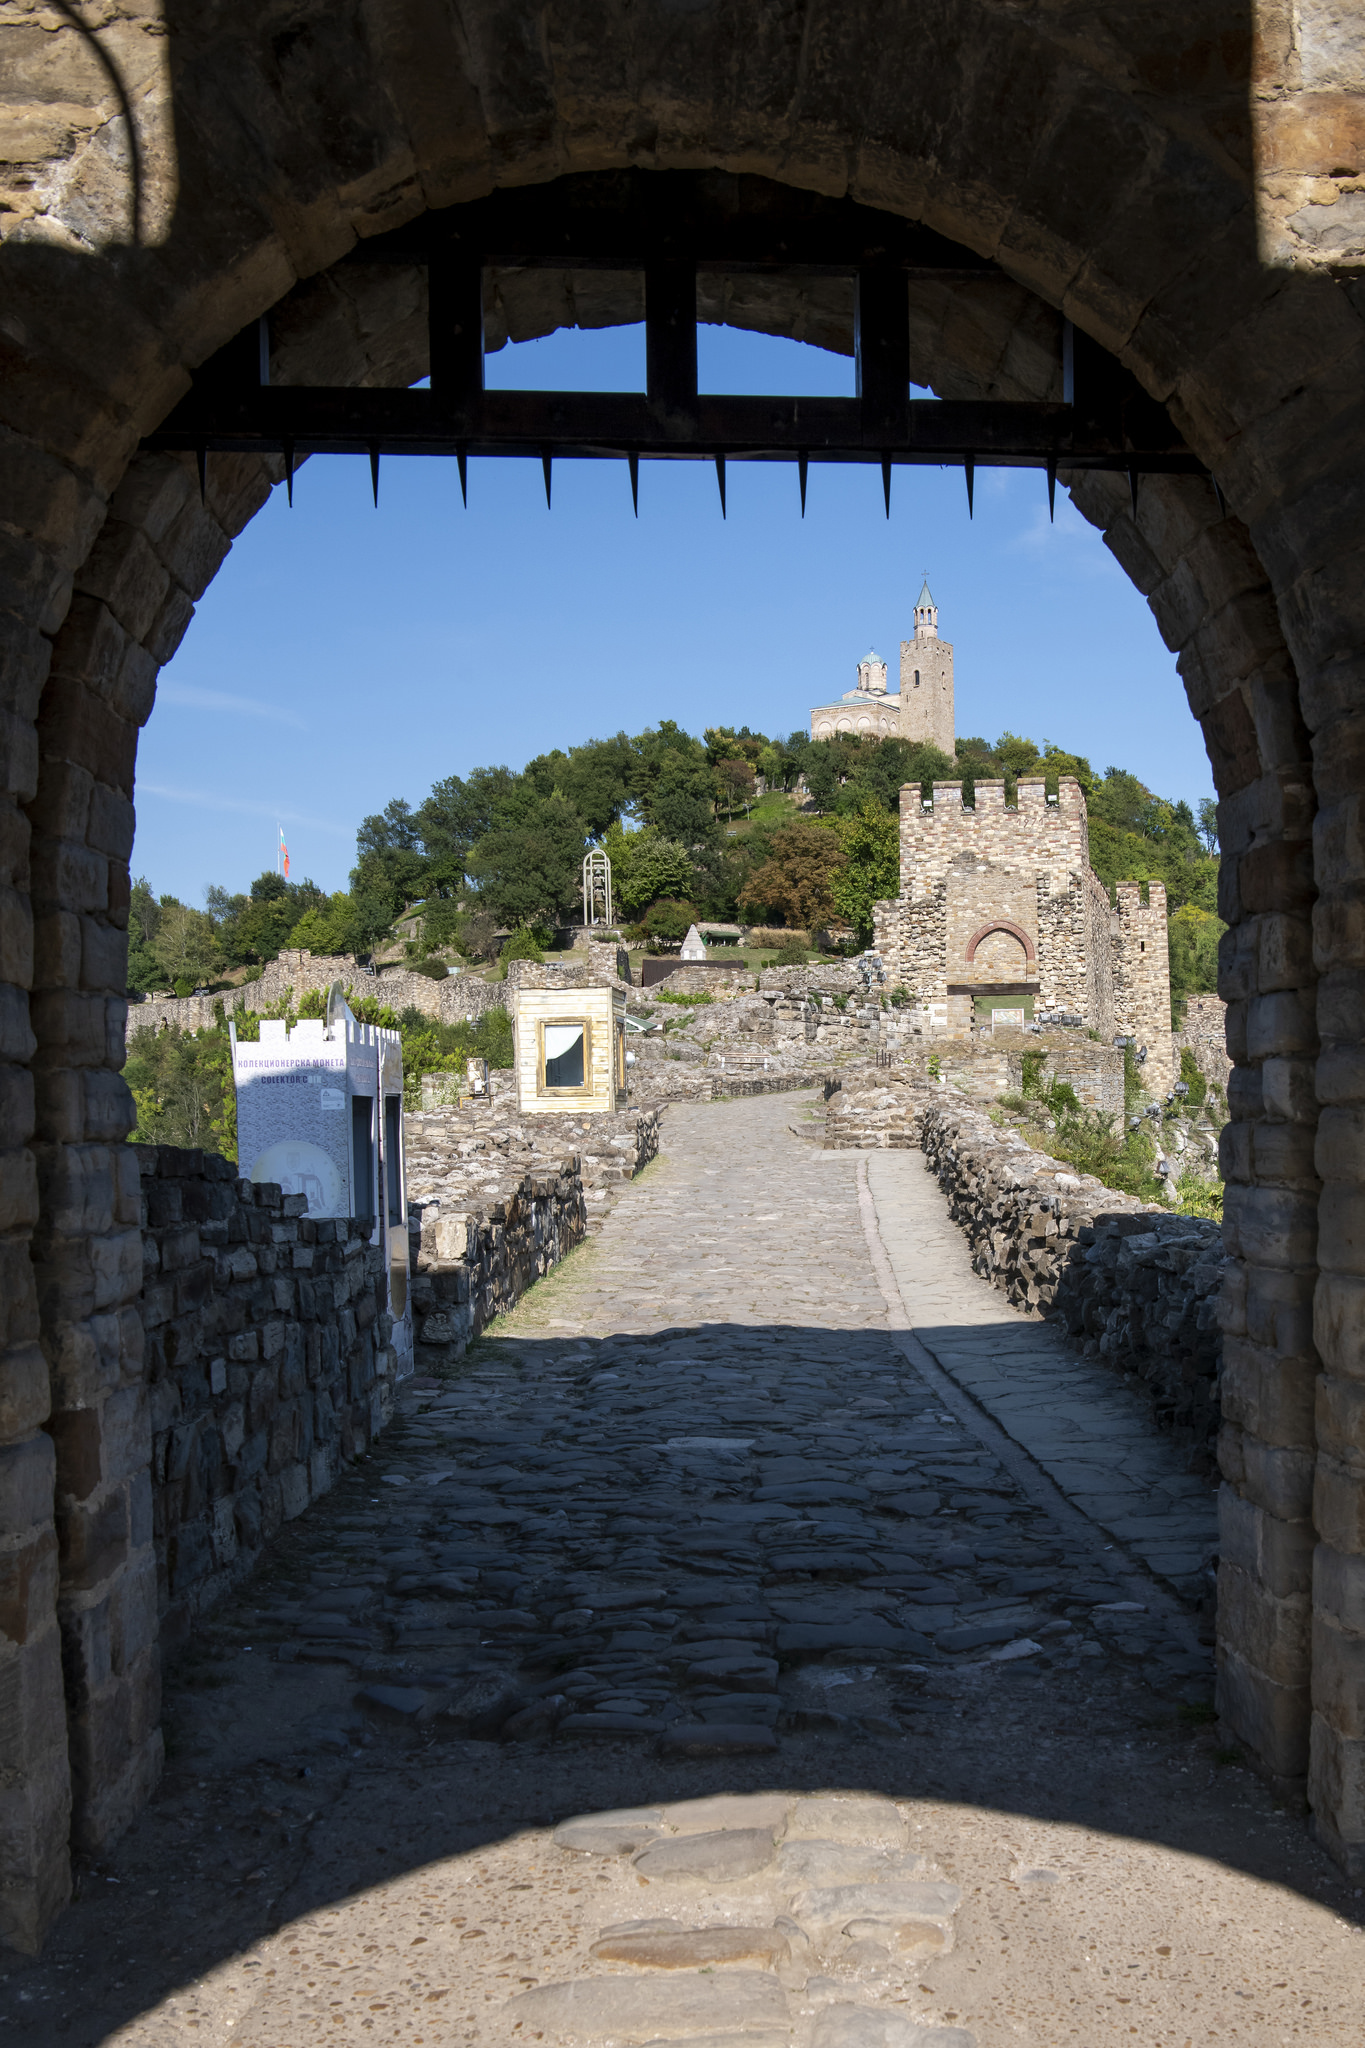 The Fortress - Tsarevets (Veliko Turnovo, Bulgaria)